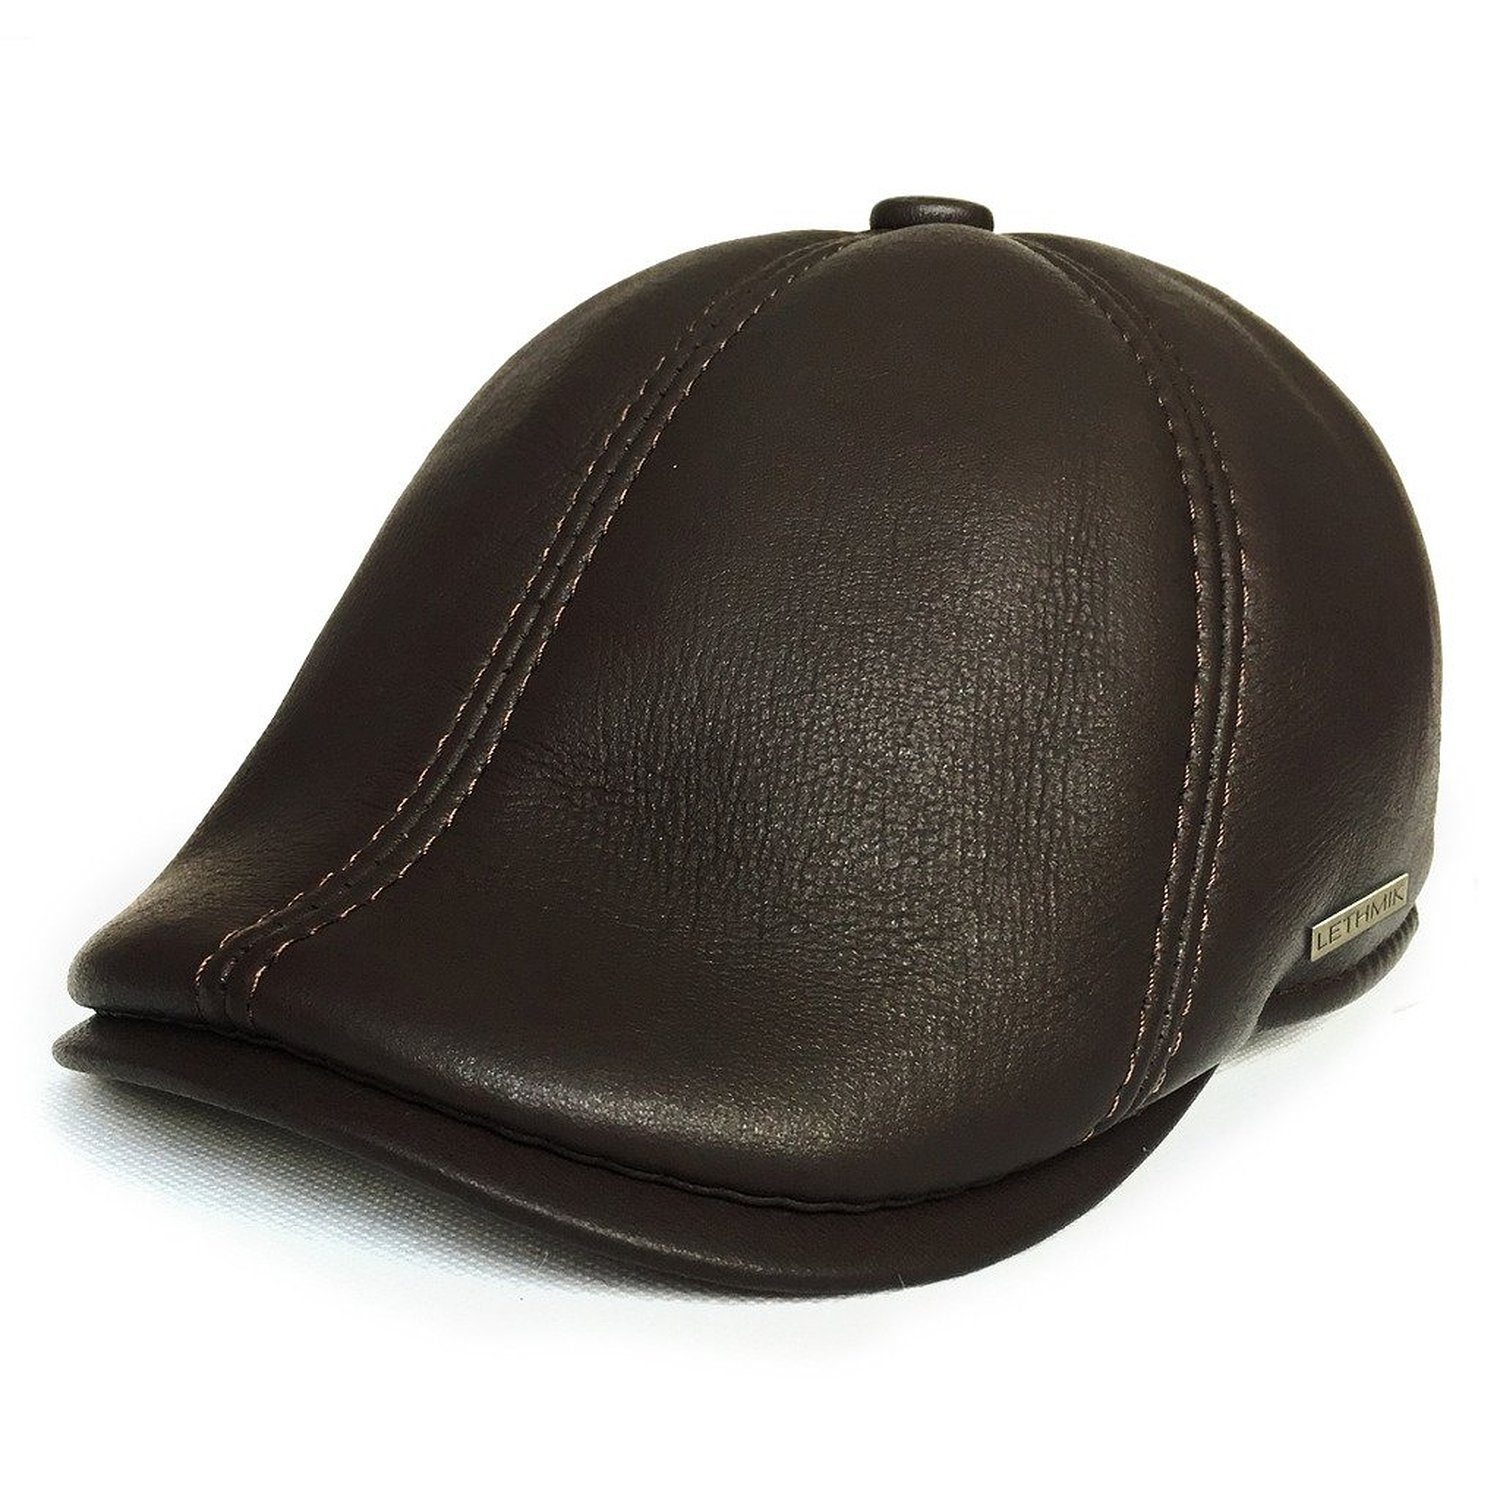 f4da006058c lethmik Leather Flat Hat Gatsby newsboy Cap Cabbie IVY Irish Hats Driver  Hunting